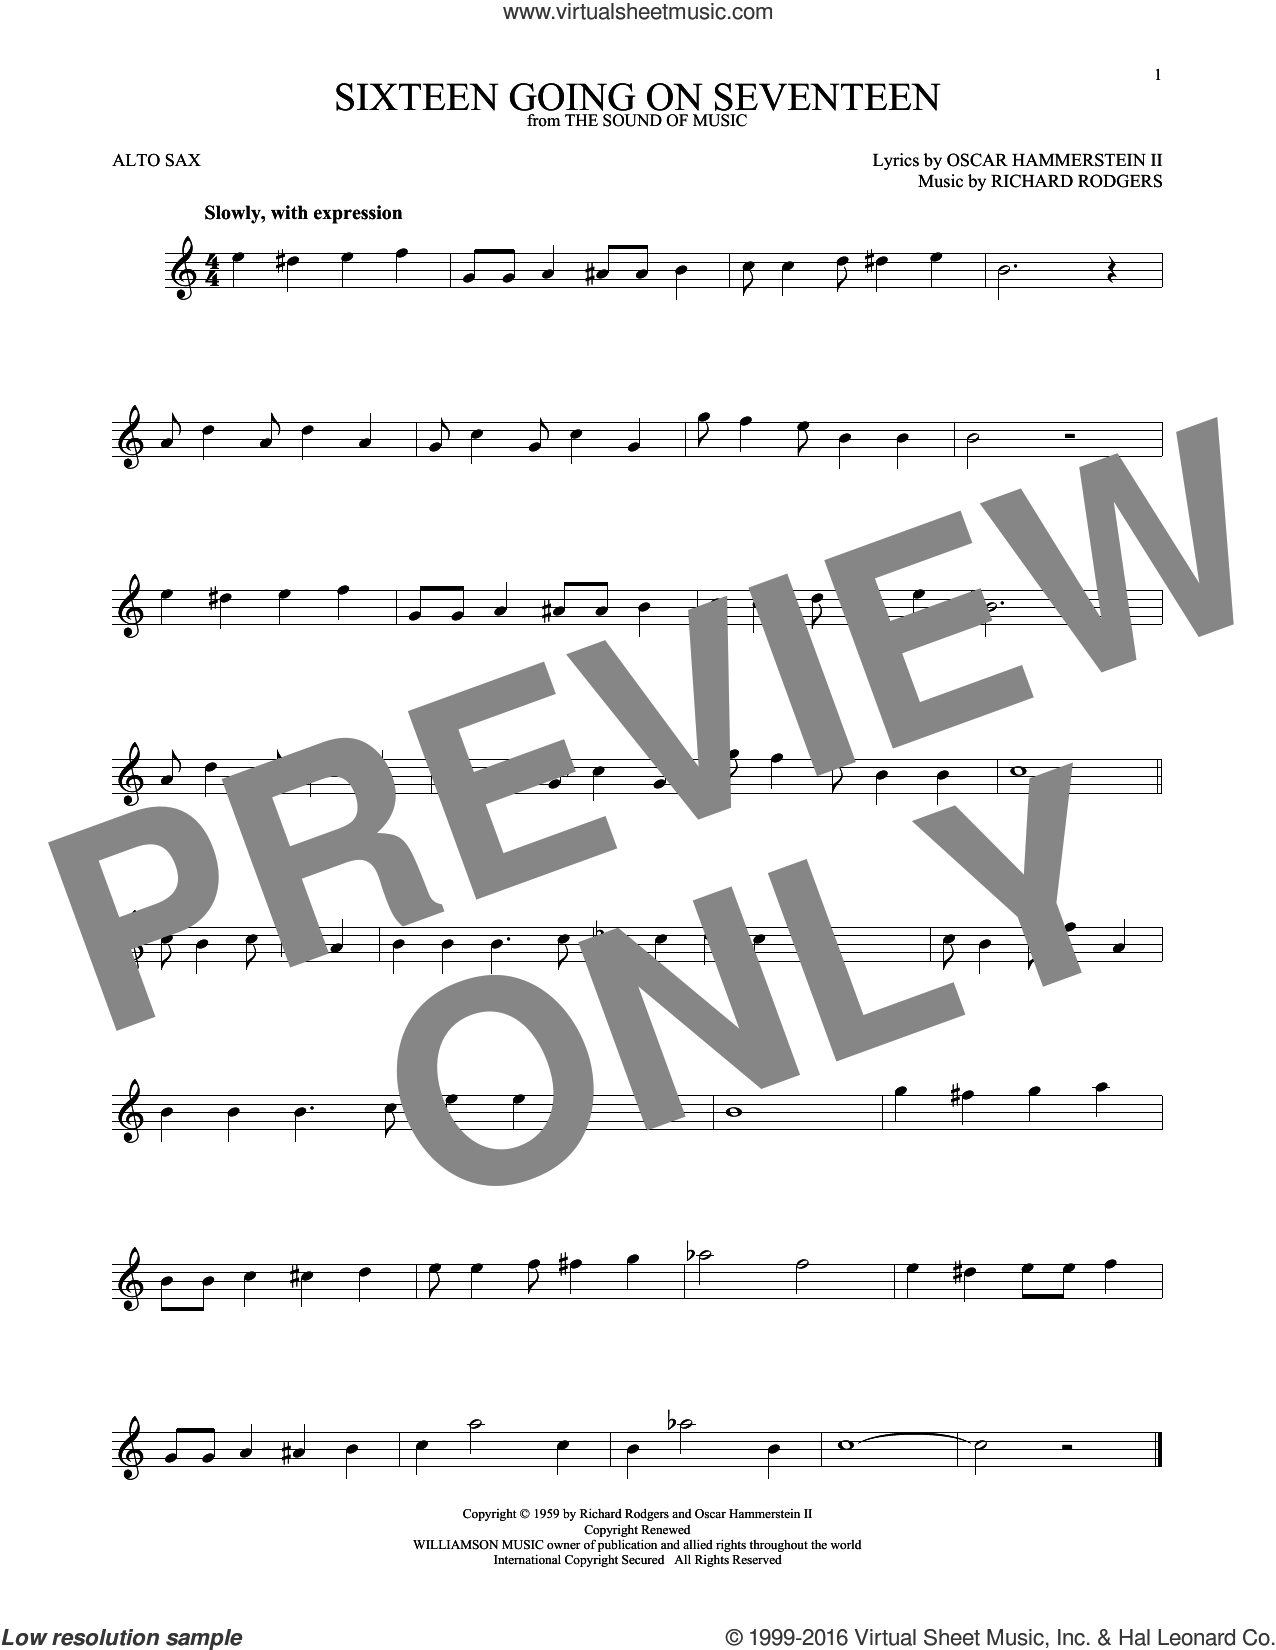 Sixteen Going On Seventeen sheet music for alto saxophone solo by Oscar II Hammerstein, Rodgers & Hammerstein and Richard Rodgers. Score Image Preview.